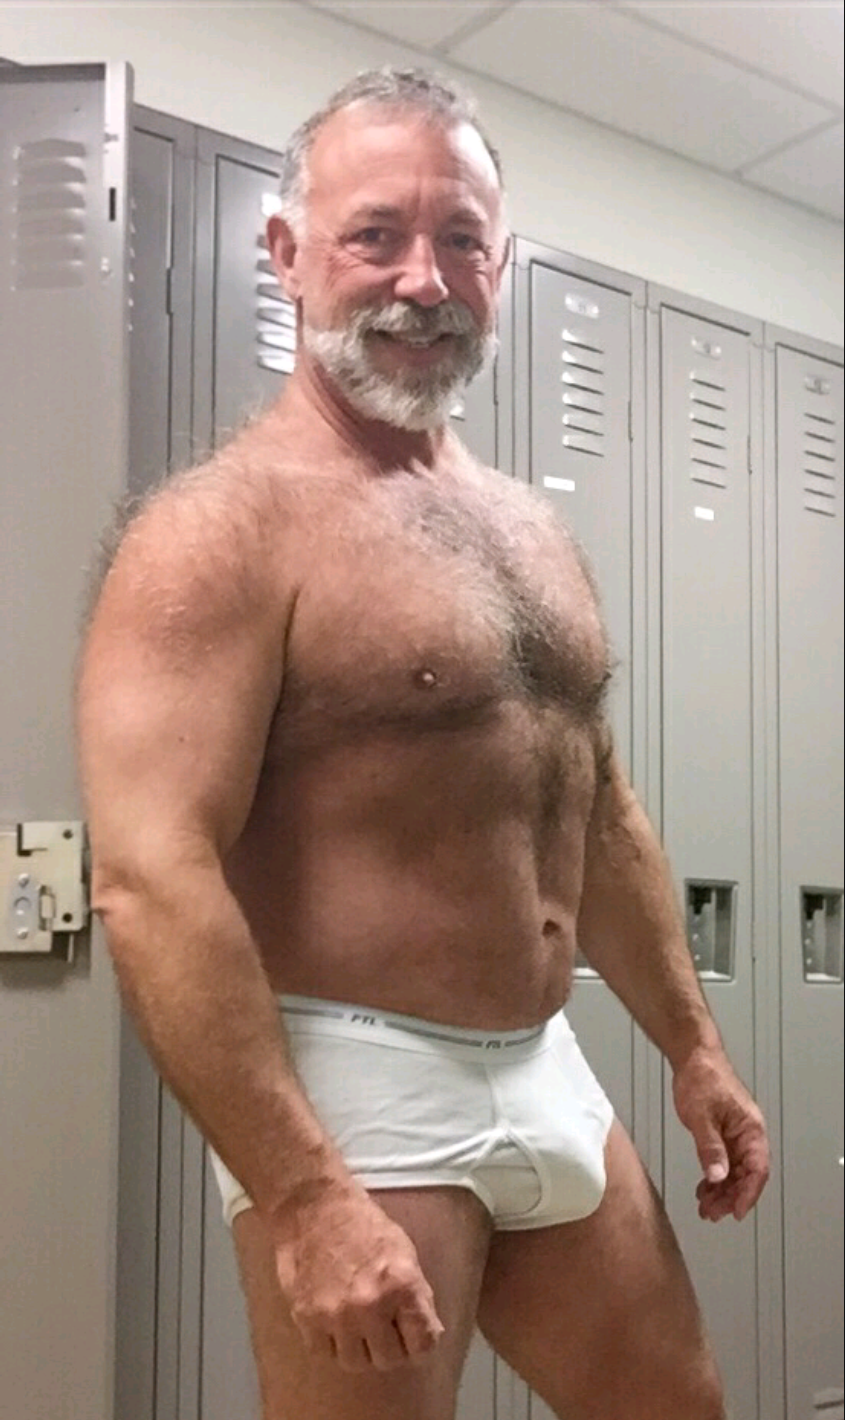 Hot mature bear cumming